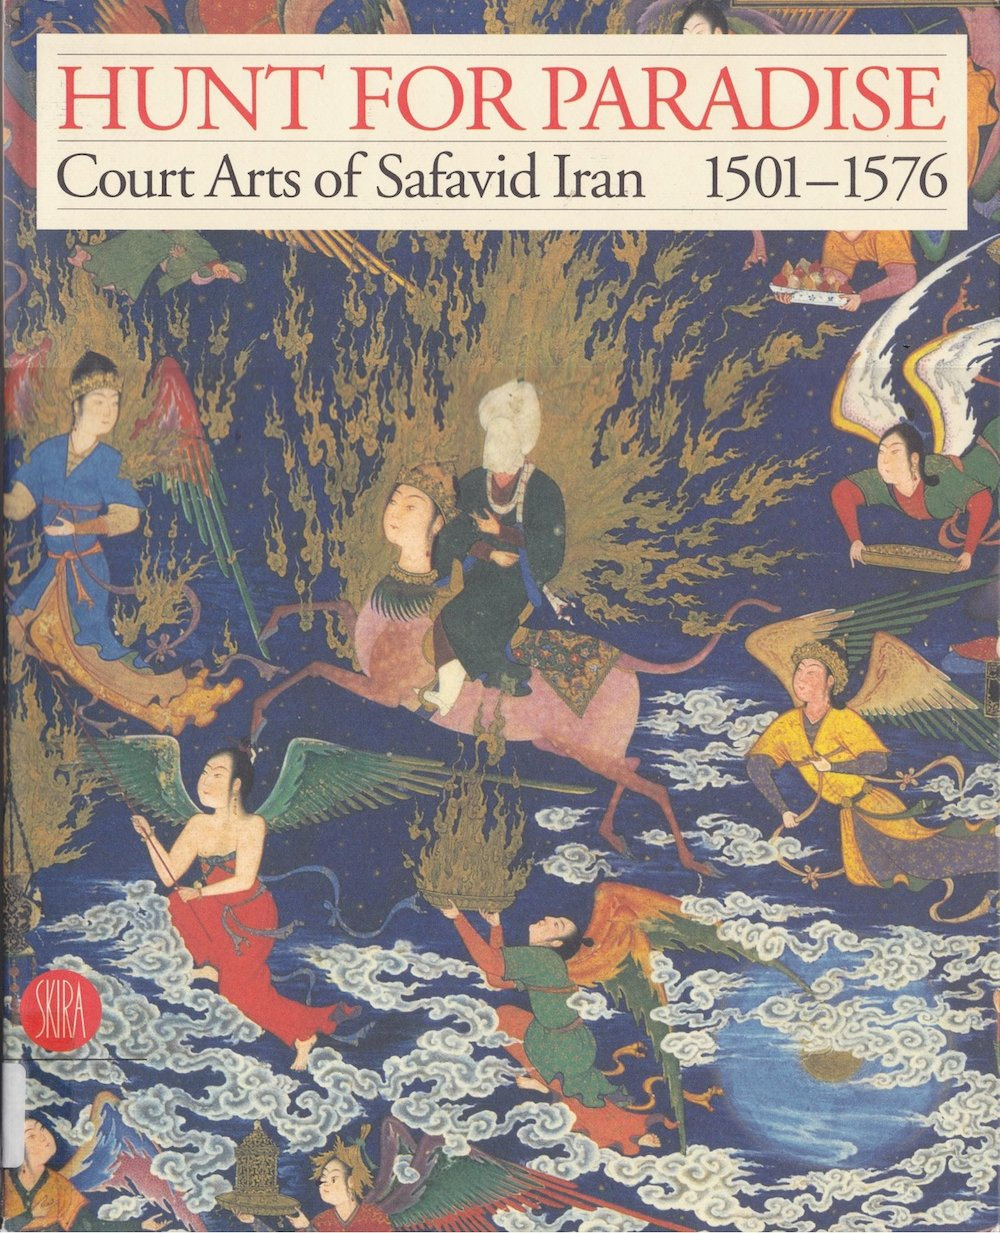 Hunt for Paradise: Court Arts of Safavid Iran, 1501-1576